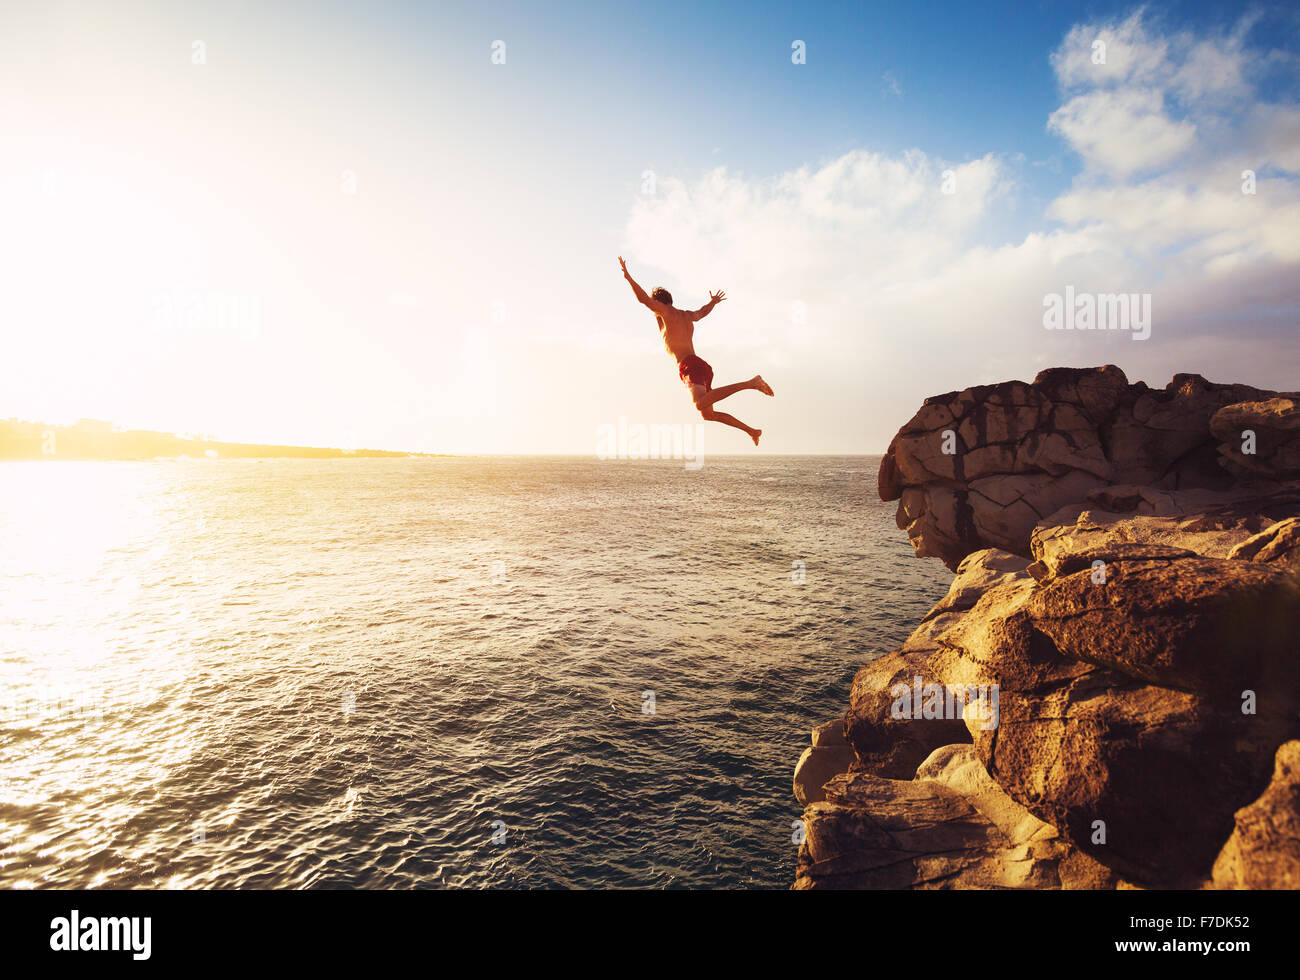 Cliff Jumping into the Ocean at Sunset, Summer Fun Lifestyle Stock Photo